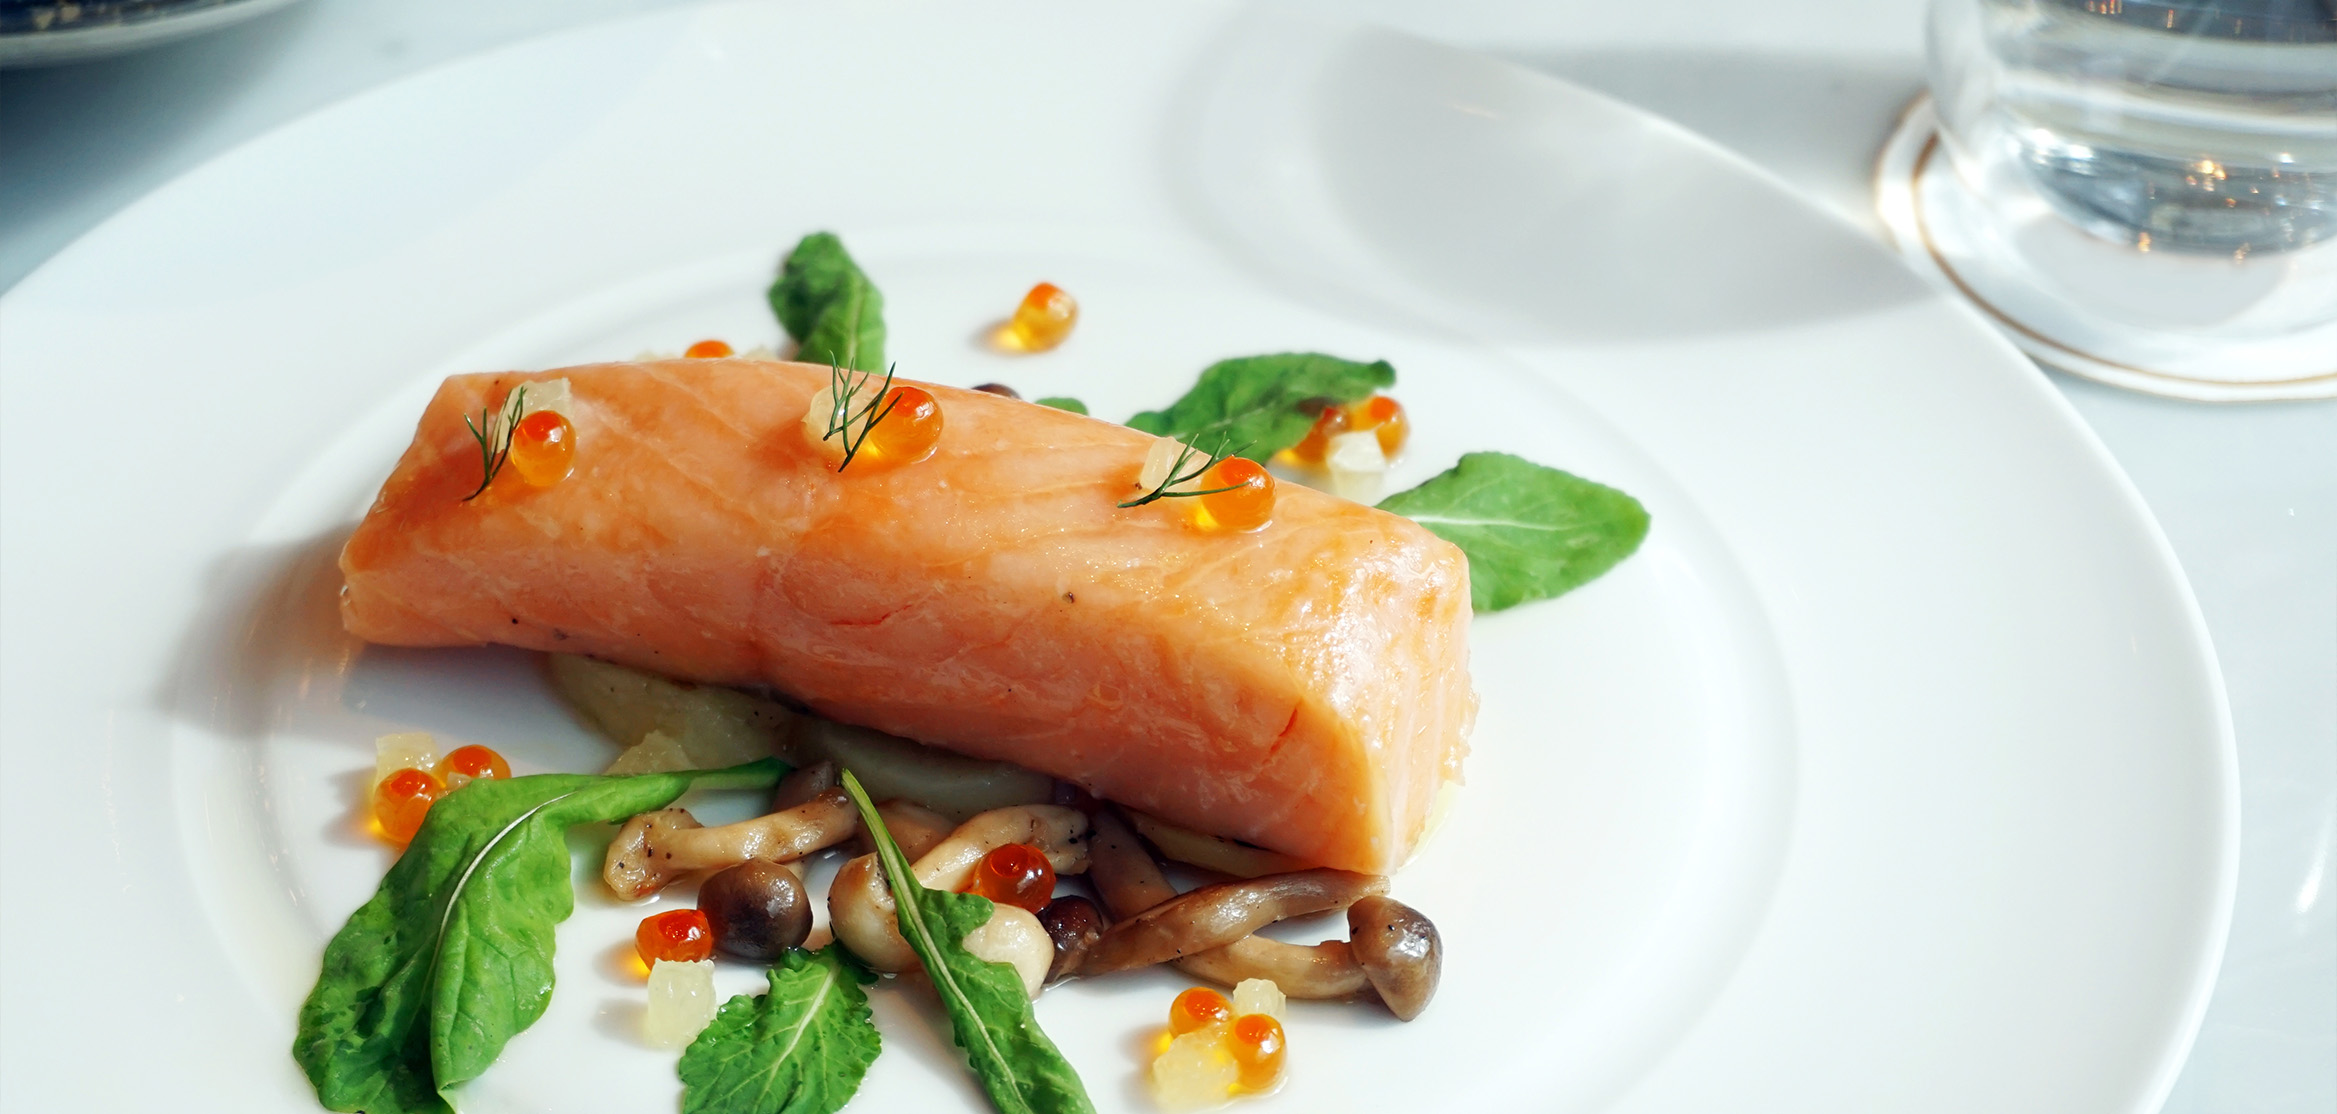 Ingredients for Sous Vide Salmon